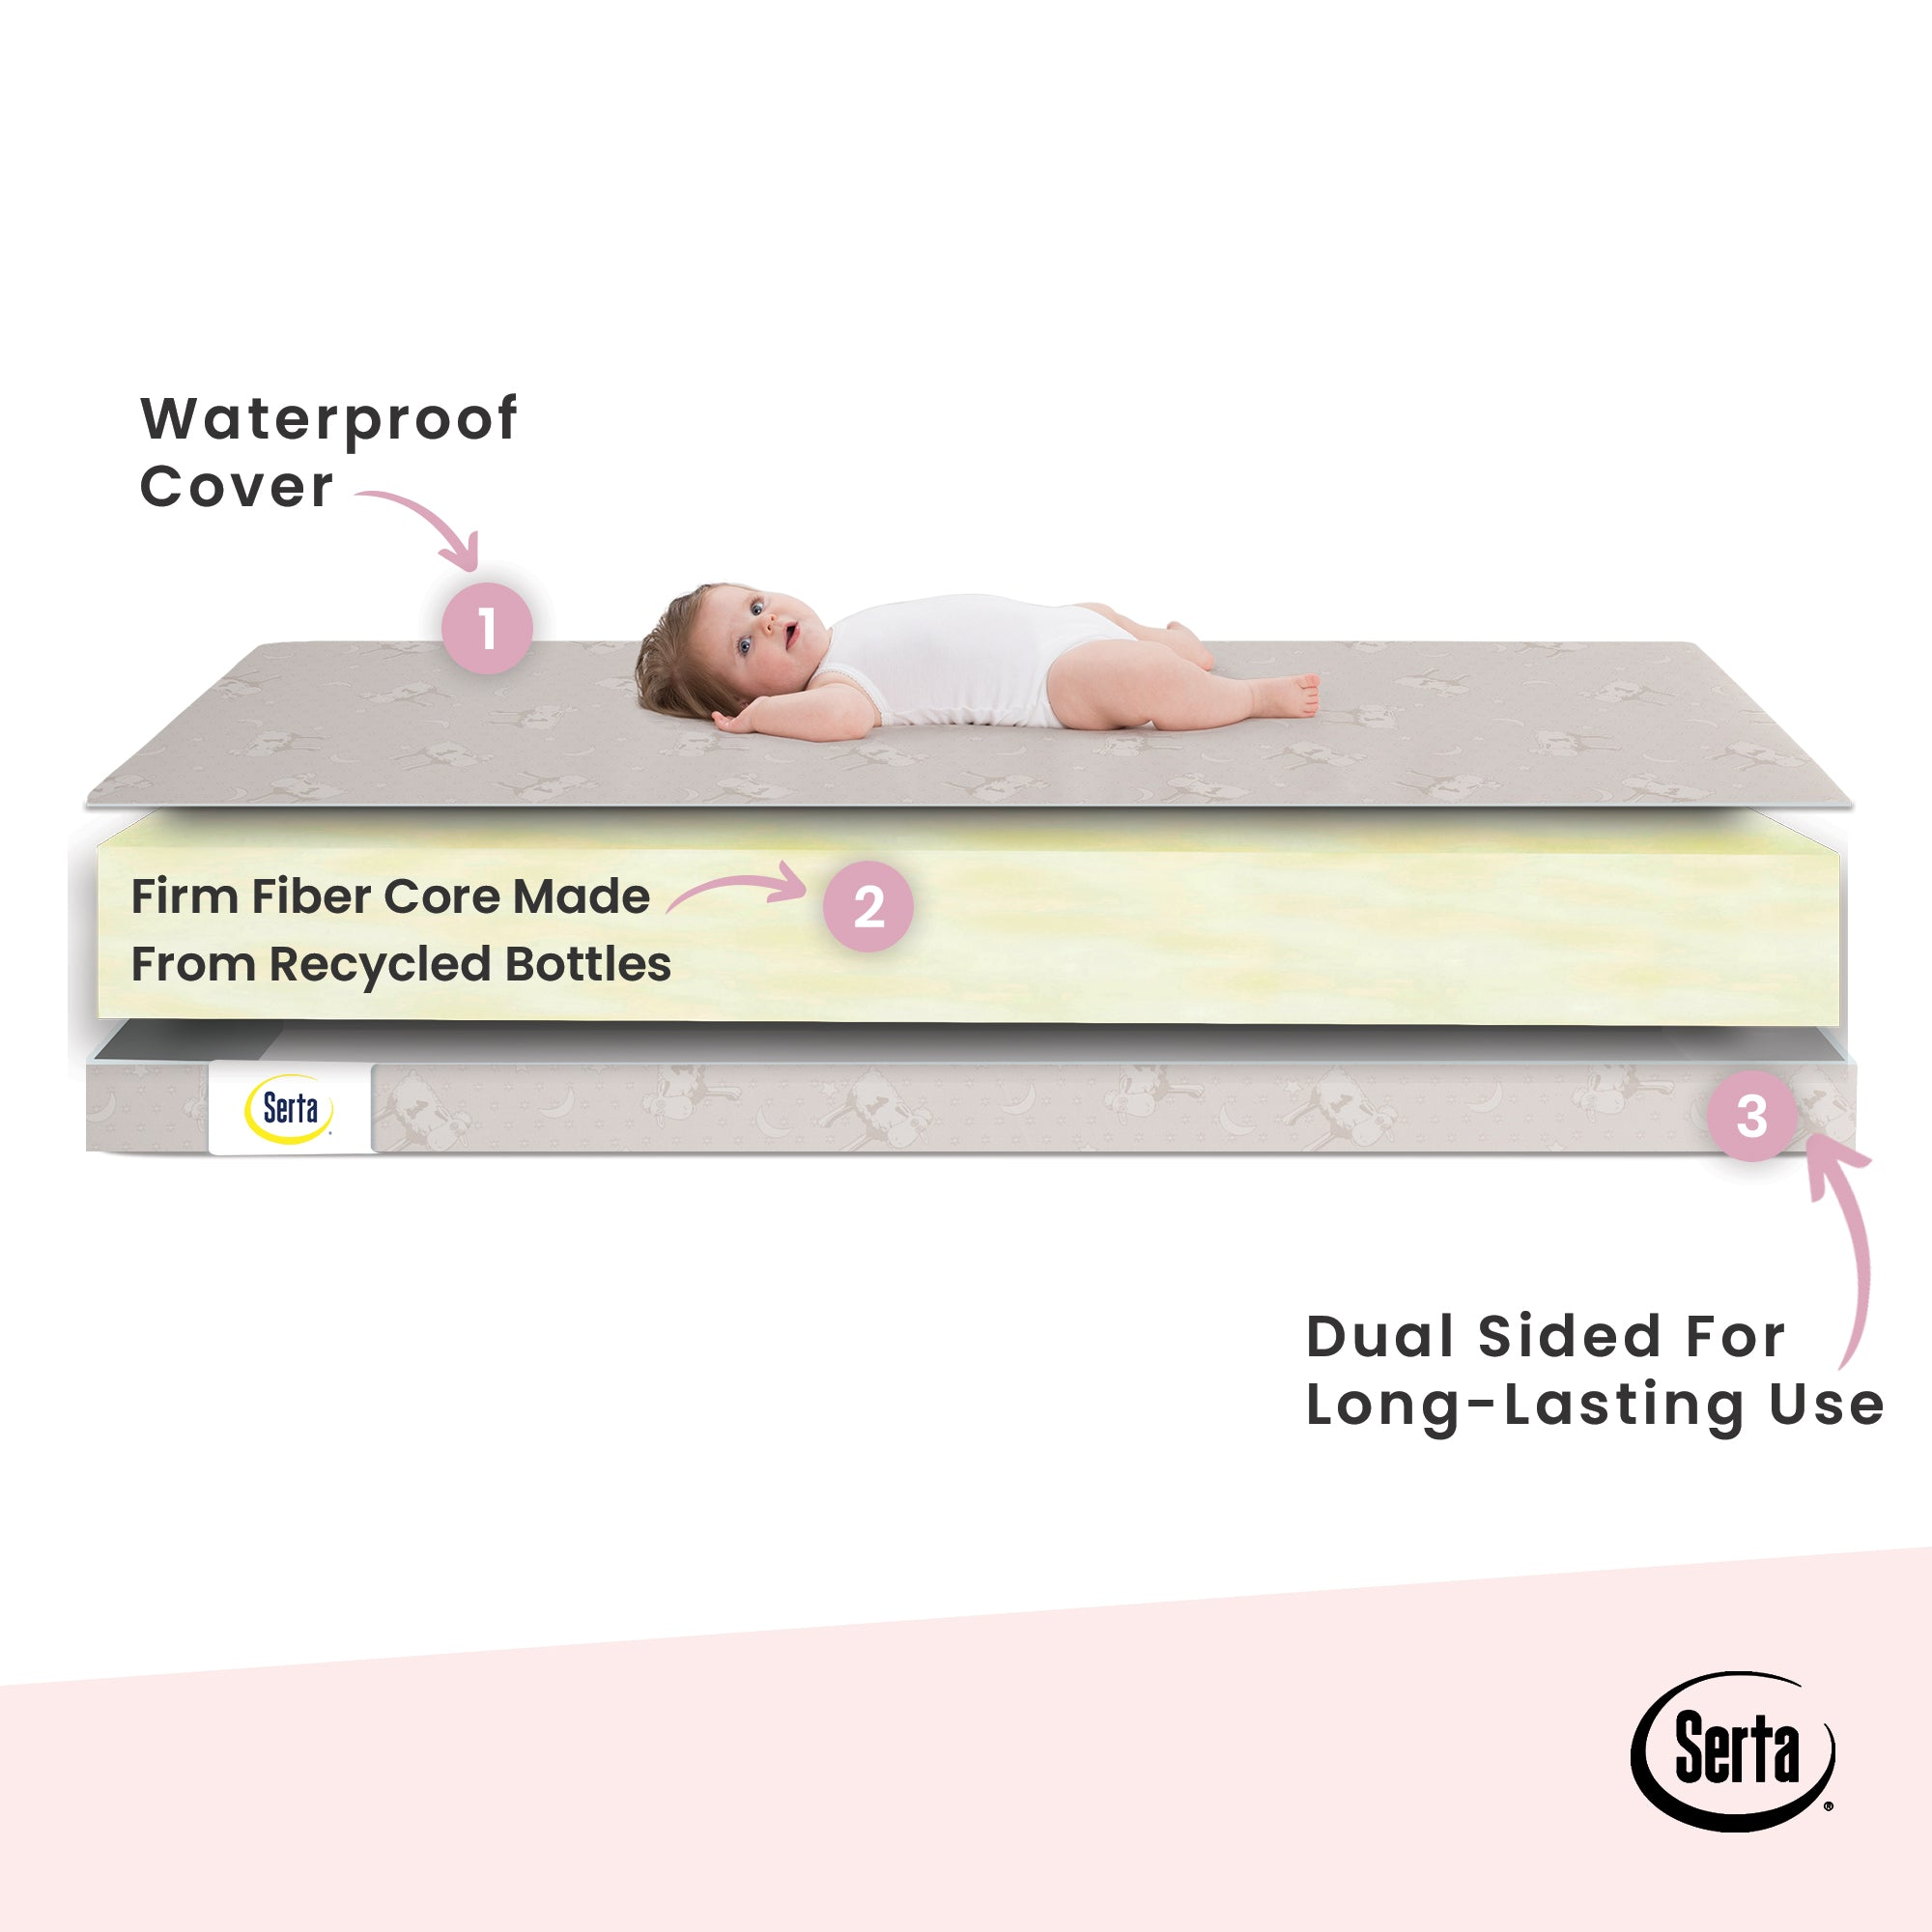 Serta SleepTrue 4-Inch Mini Crib Mattress, Side Features View